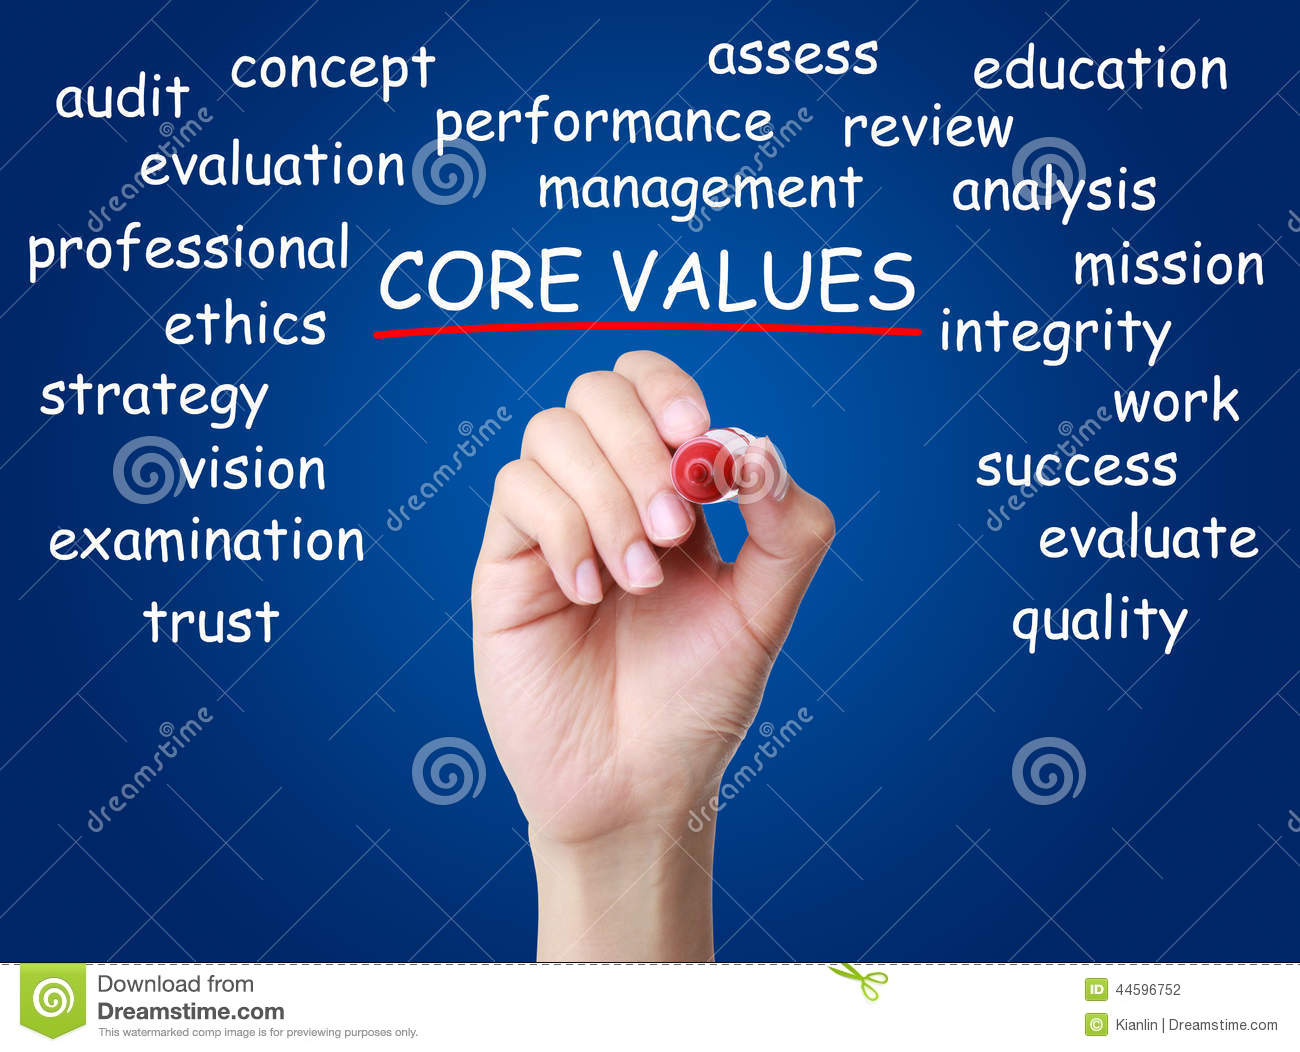 core values in quality management Core values partners' commitment to performance excellence has led to their relationship with the european foundation for quality management (efqm) this partnership helps international organizations drive improved outcomes using the efqm criteria and fundamental concepts of excellence.